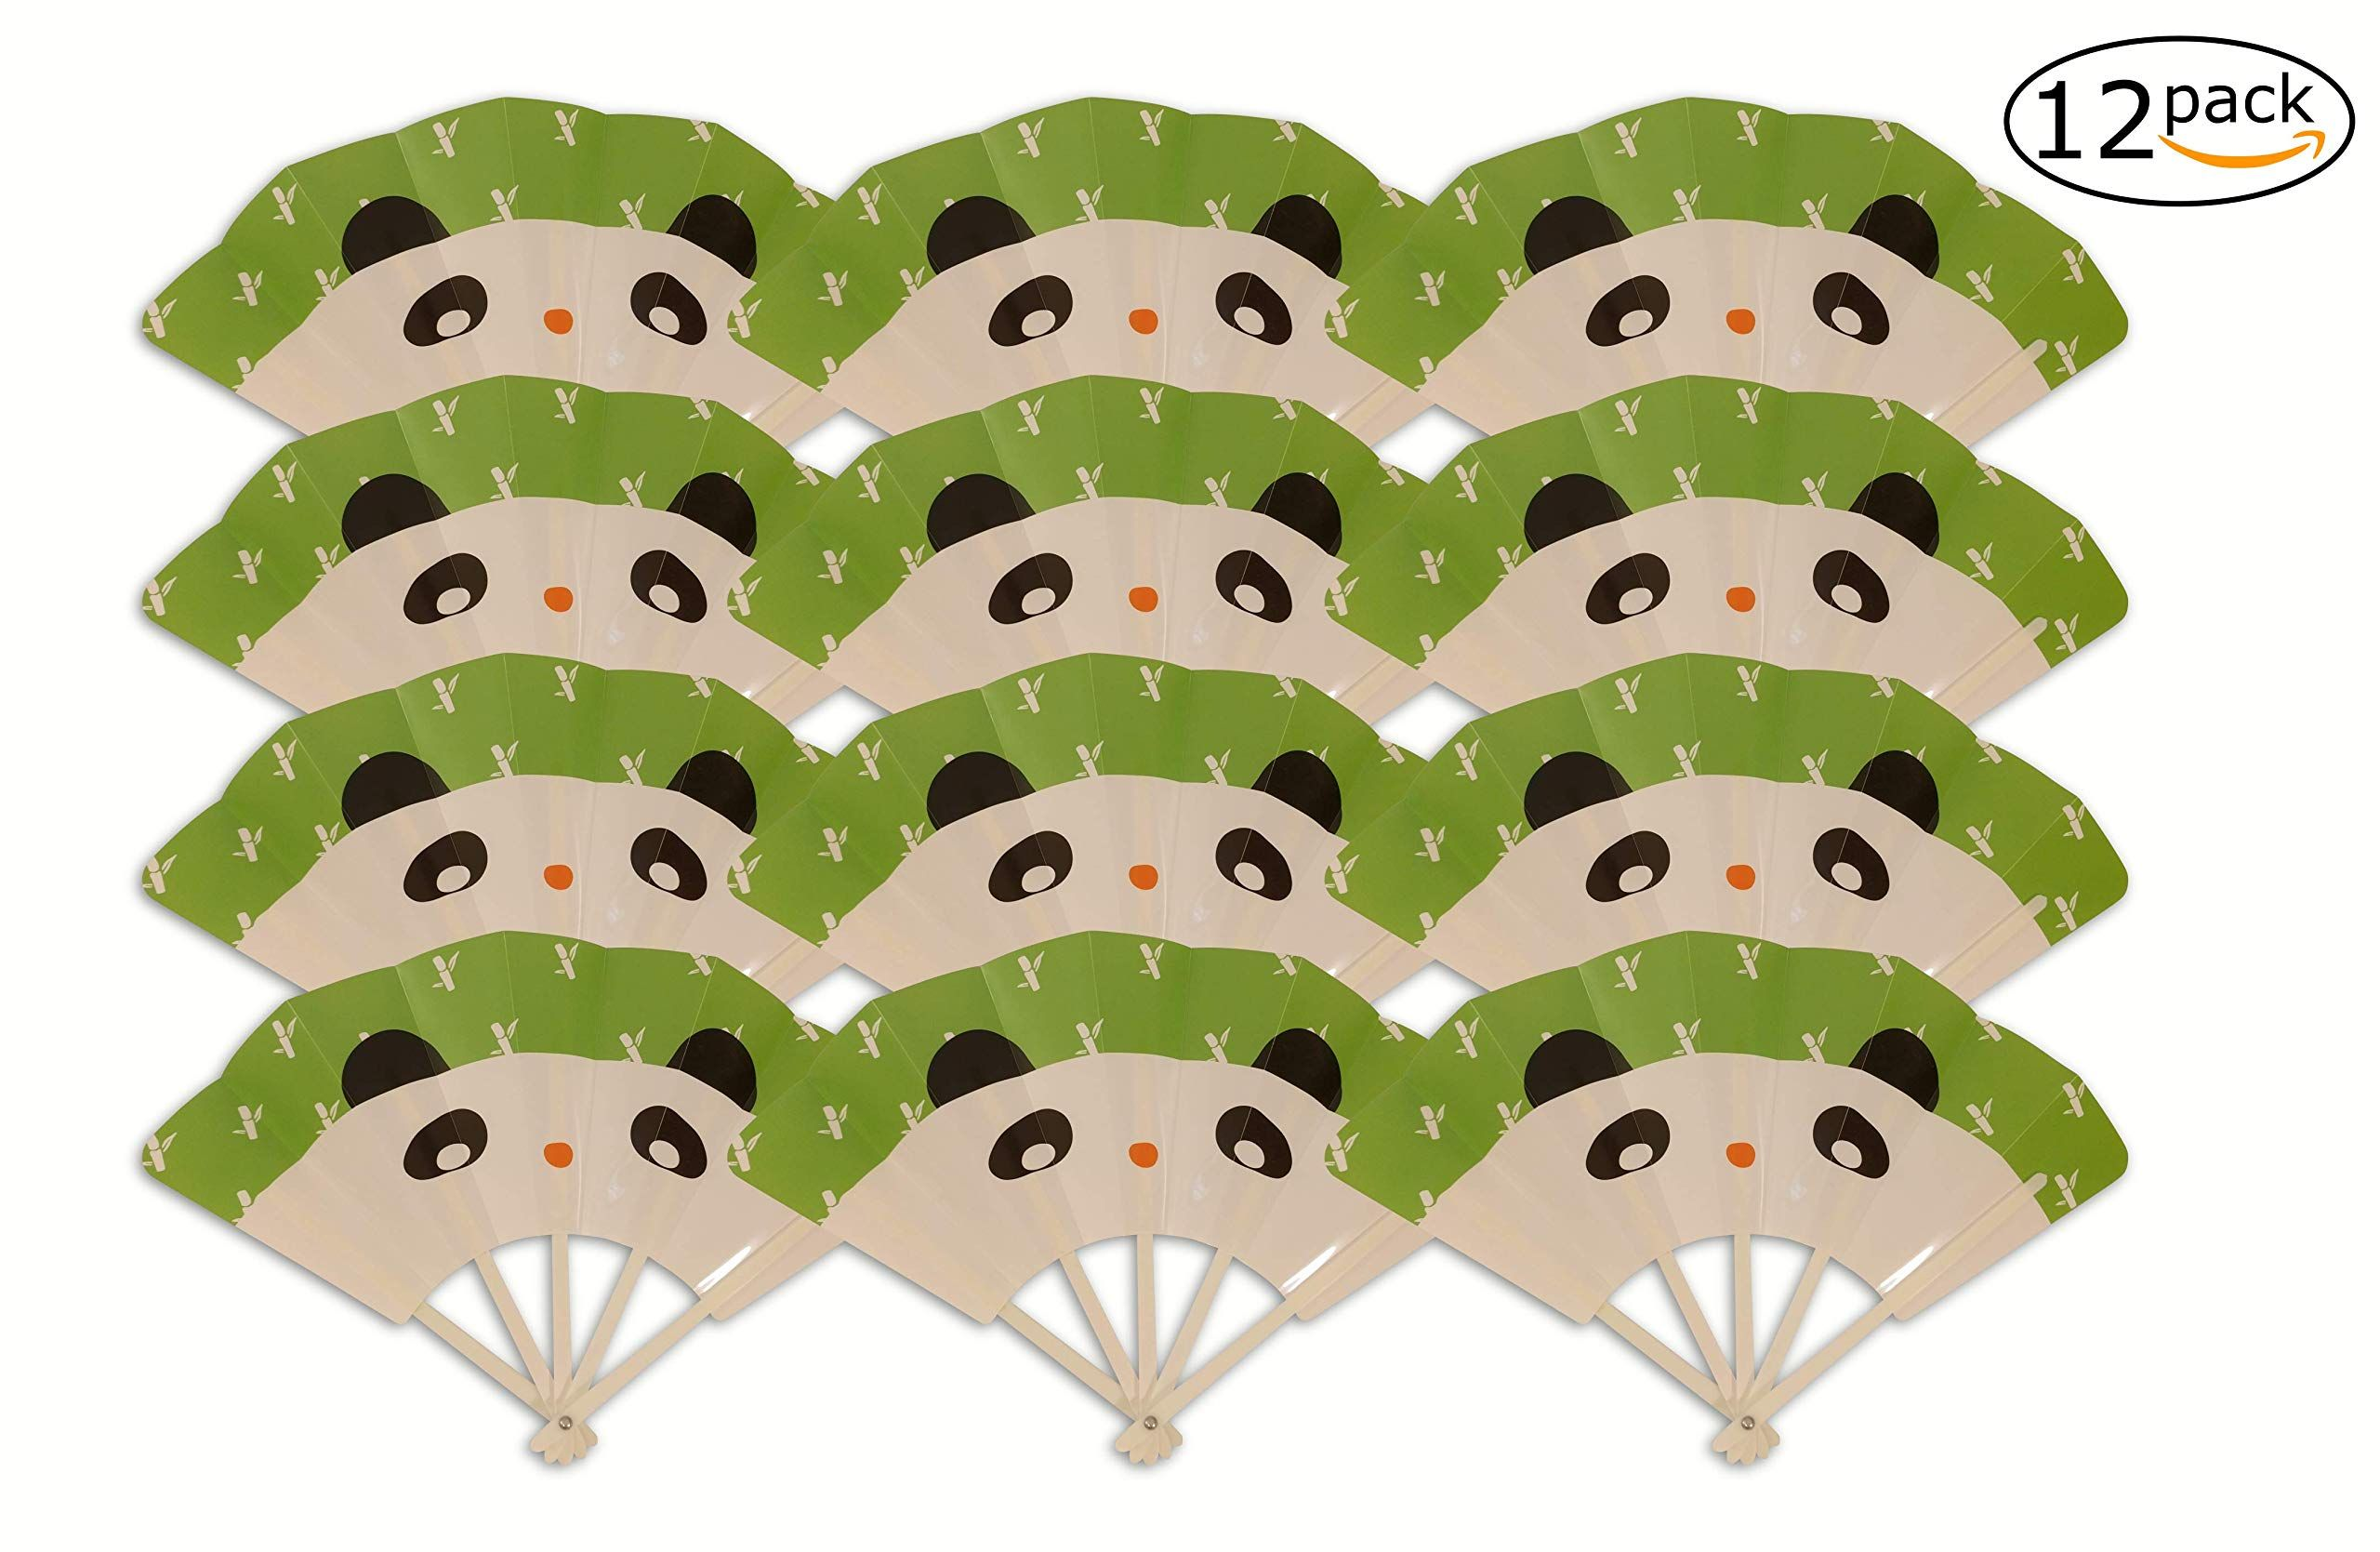 Hand Fans Toddler Birthday Party Favors for Kids; Cat 12ct Fun and Safe; Folding Fan Toys Boys Girls